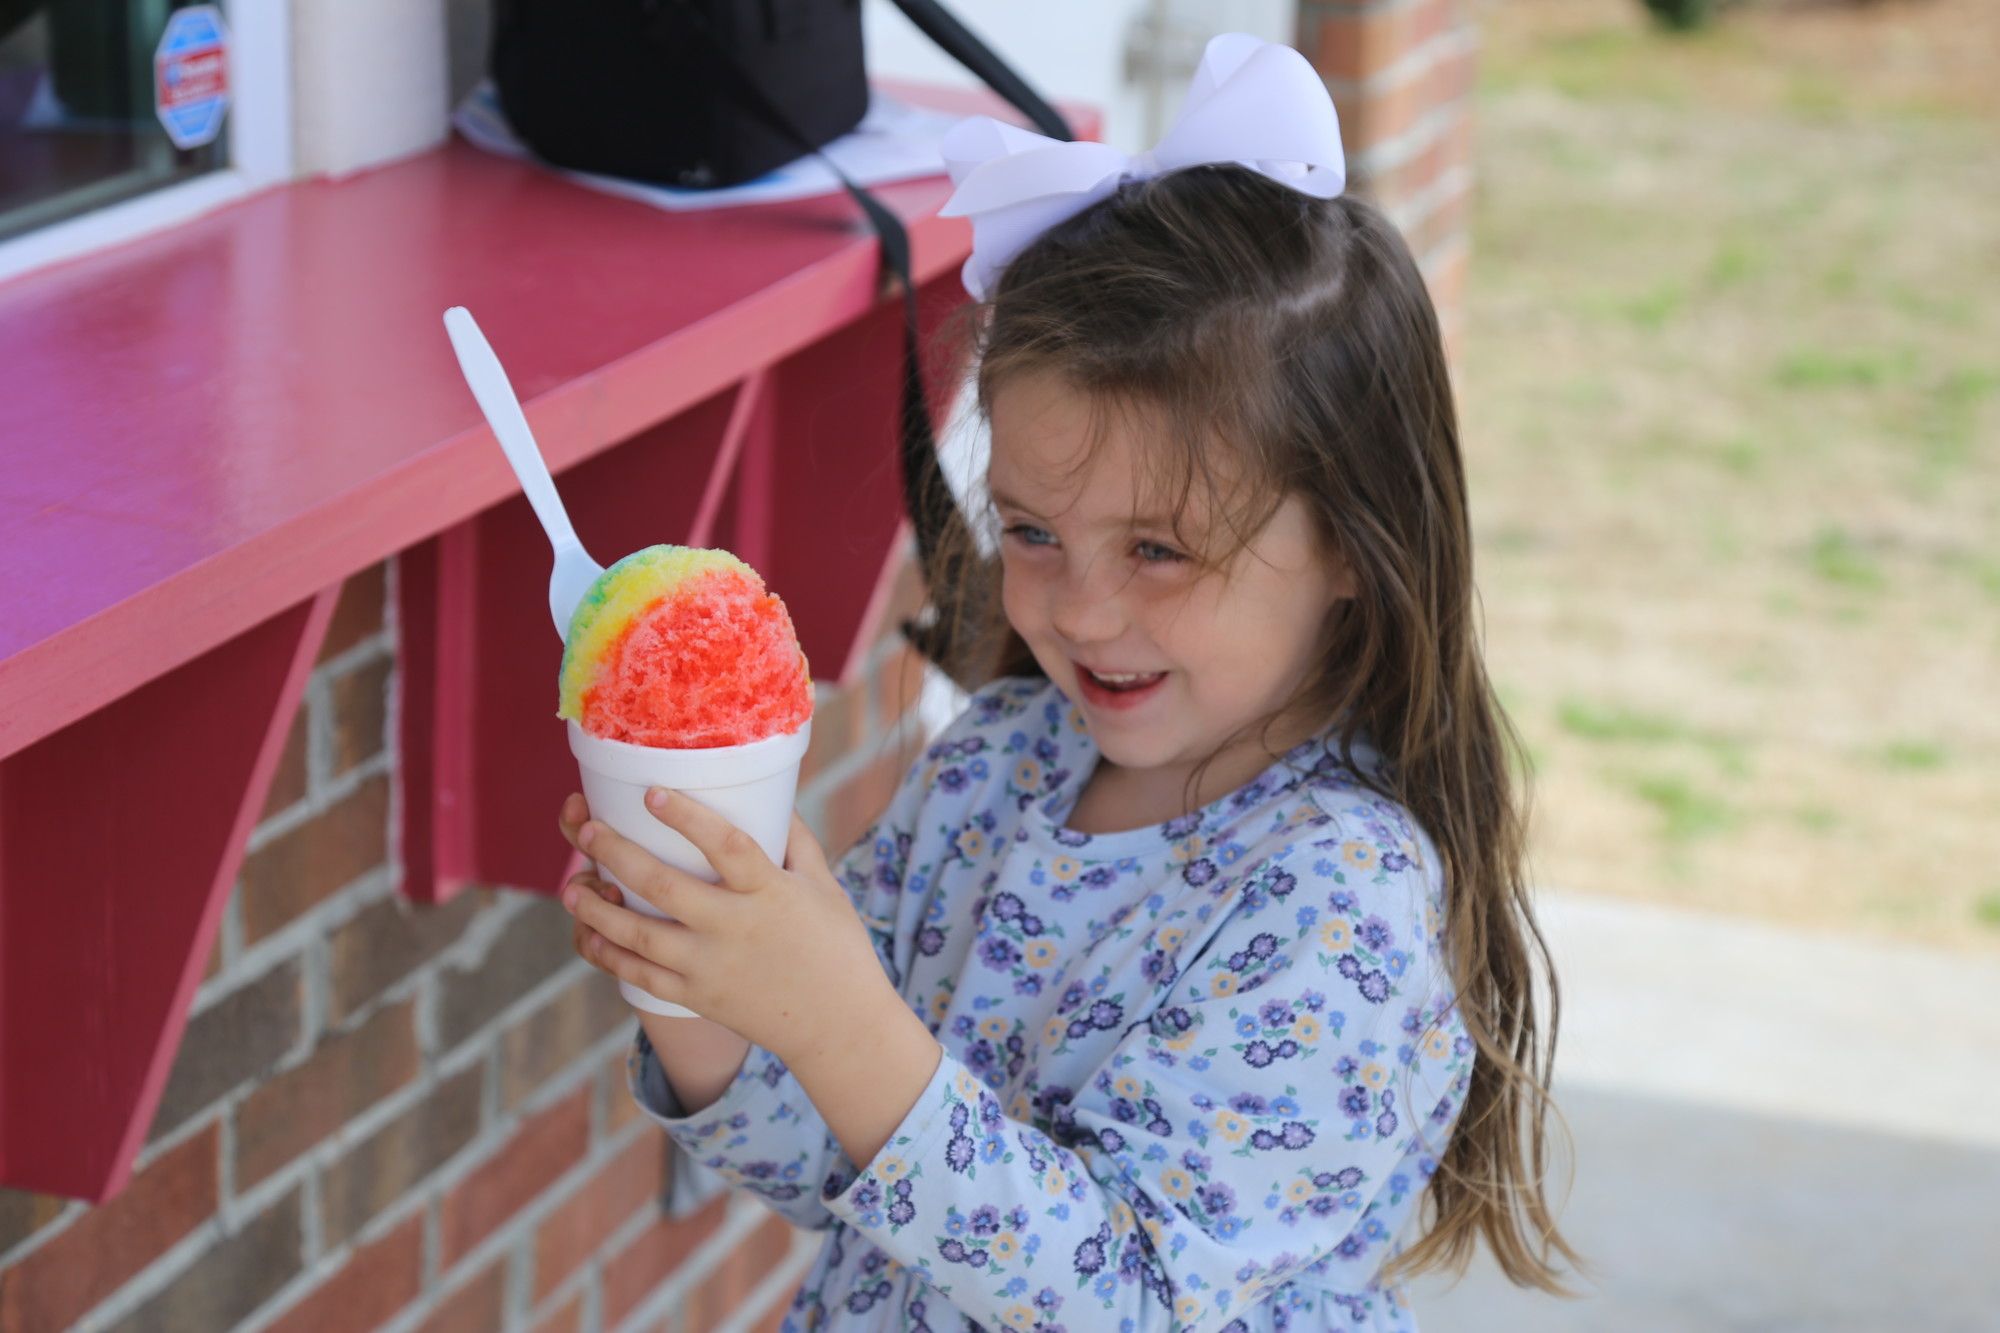 PHOTOS BY BRUCE MILLS / THE SUMTER ITEM Zoey Nelley, 6, enjoys her snowball treat on Monday at Pelican's SnoBalls.